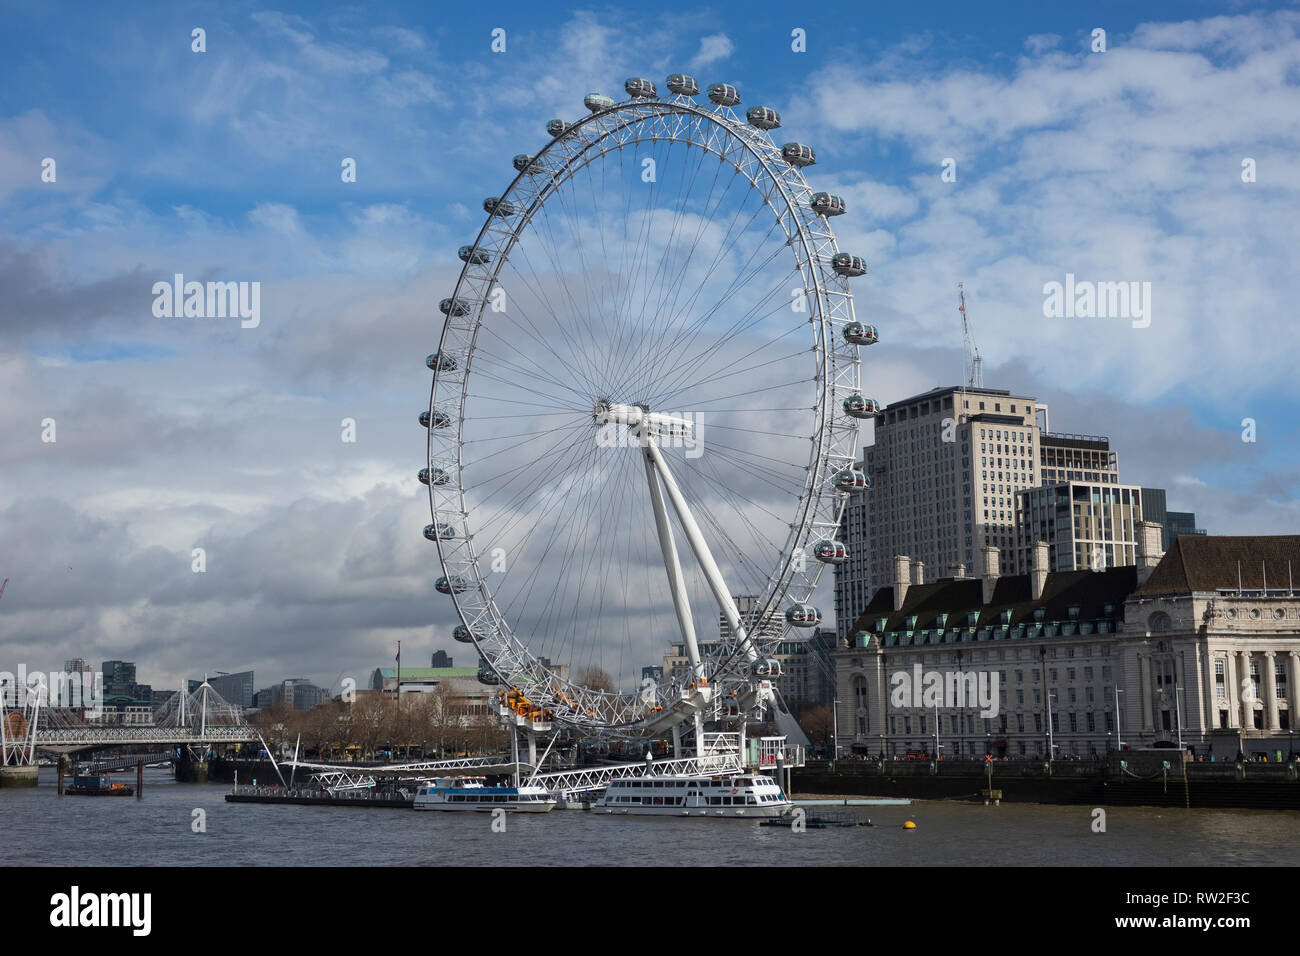 London, England - February 28, 2019: London Eye or Millennium Wheel on South Bank of River Thames in London England, UK - Stock Image